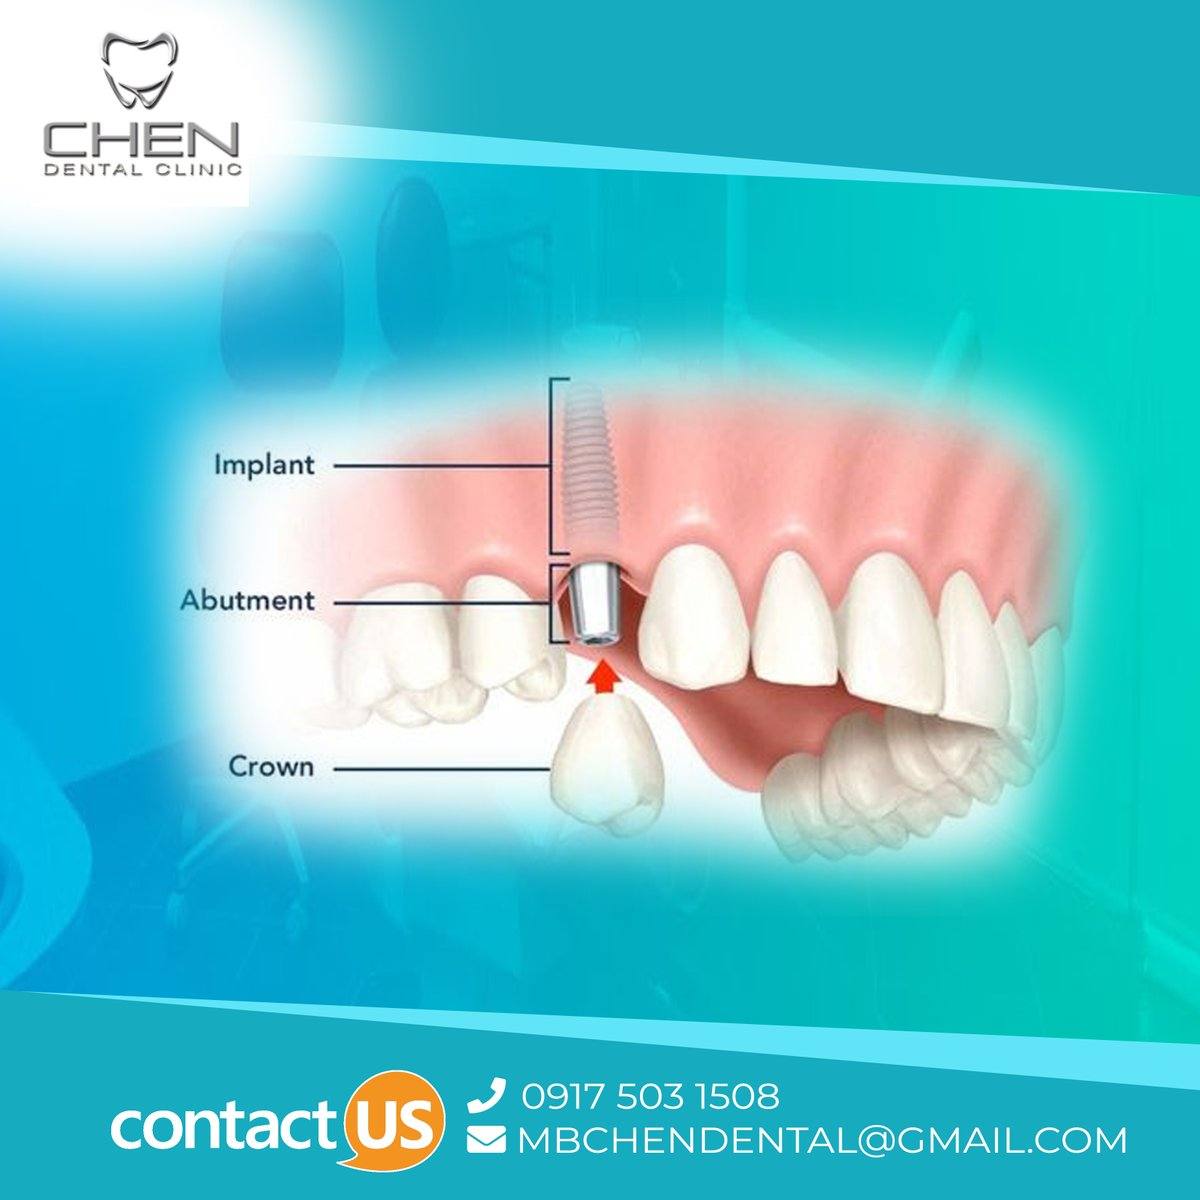 Do you have various #oralhealth diseases like #gumproblem, #cavities, #sensitivity or damaged teeth  etc. At Mbchen #Dental care , our #dentists take digital scans of your teeth to create customized #crowns that fit you perfectly . To restore your smile:  https://mbchendentalclinic.com.ph/services/crown/pic.twitter.com/8iIkzUFArJ